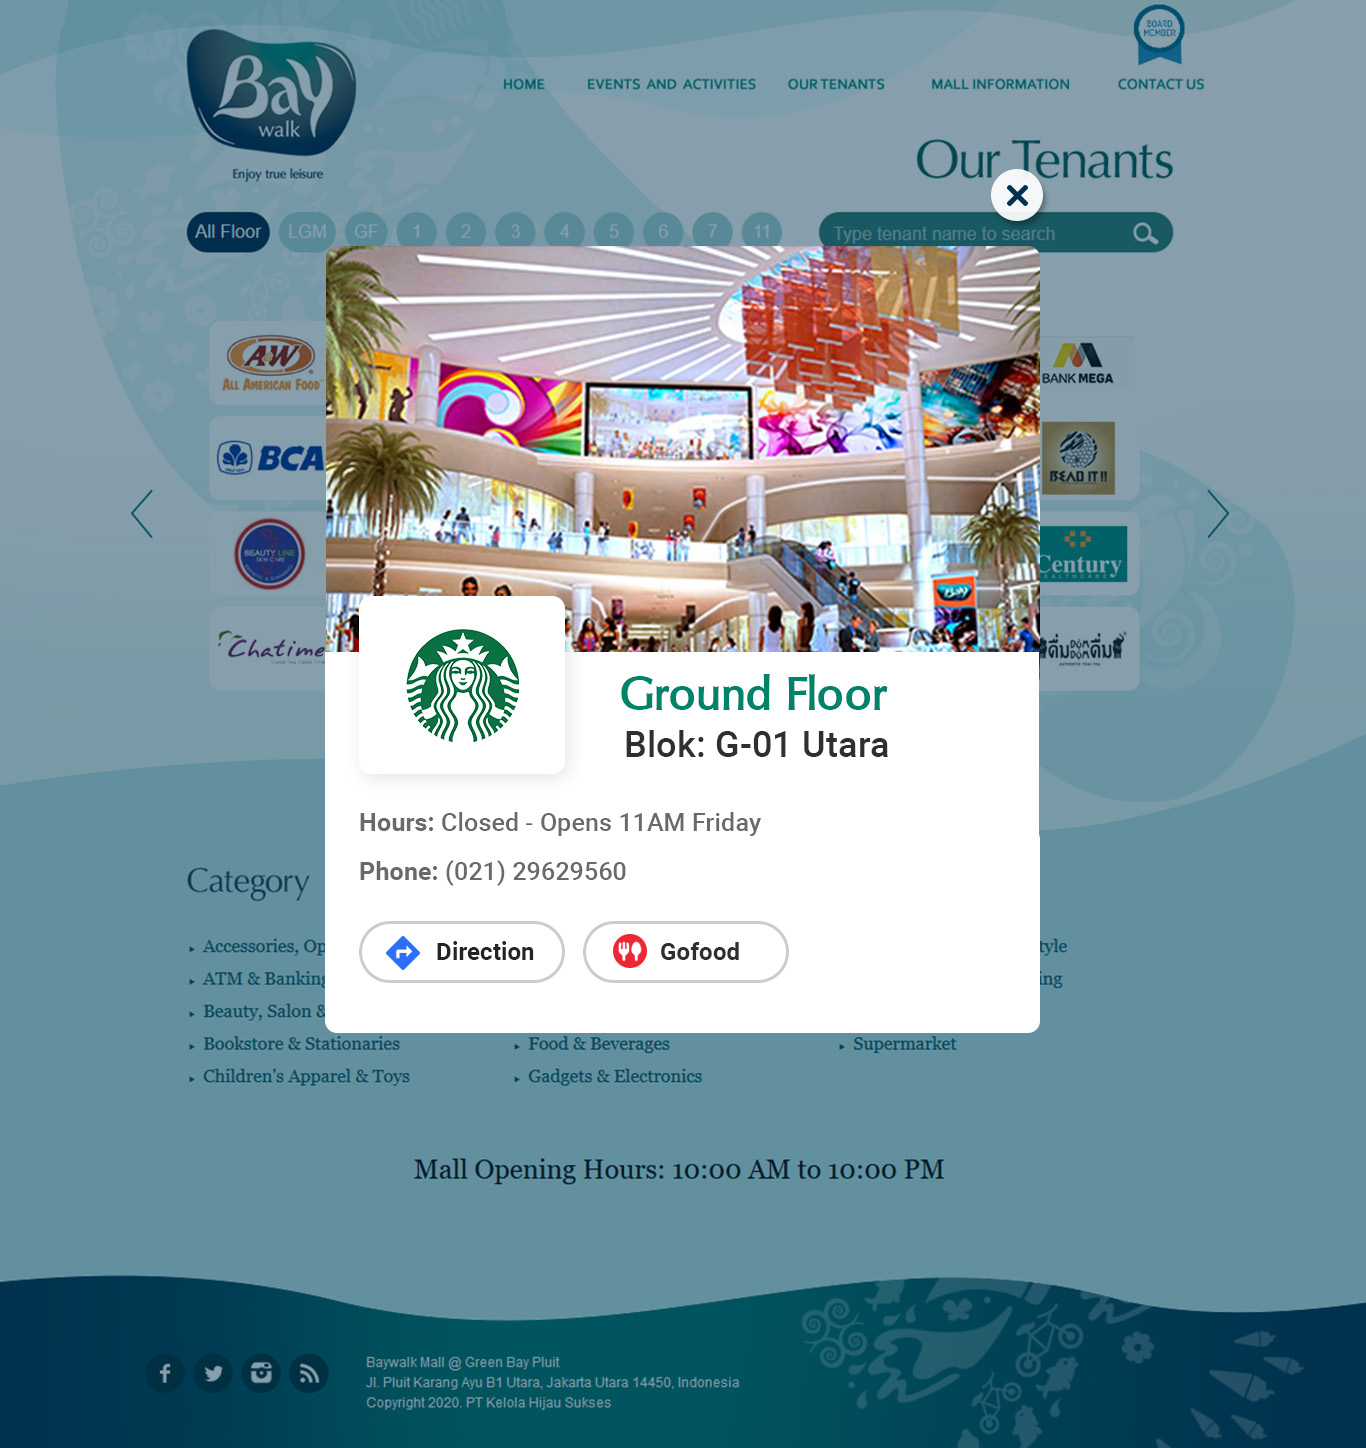 Komunigrafik ui-ux, web design and development Indonesia - Page Our Tenants Baywalk mall, Project Showcase and Portfolio Responsive Mobile, Mobile Apps, For Baywalk Mall Jakarta, Indonesia